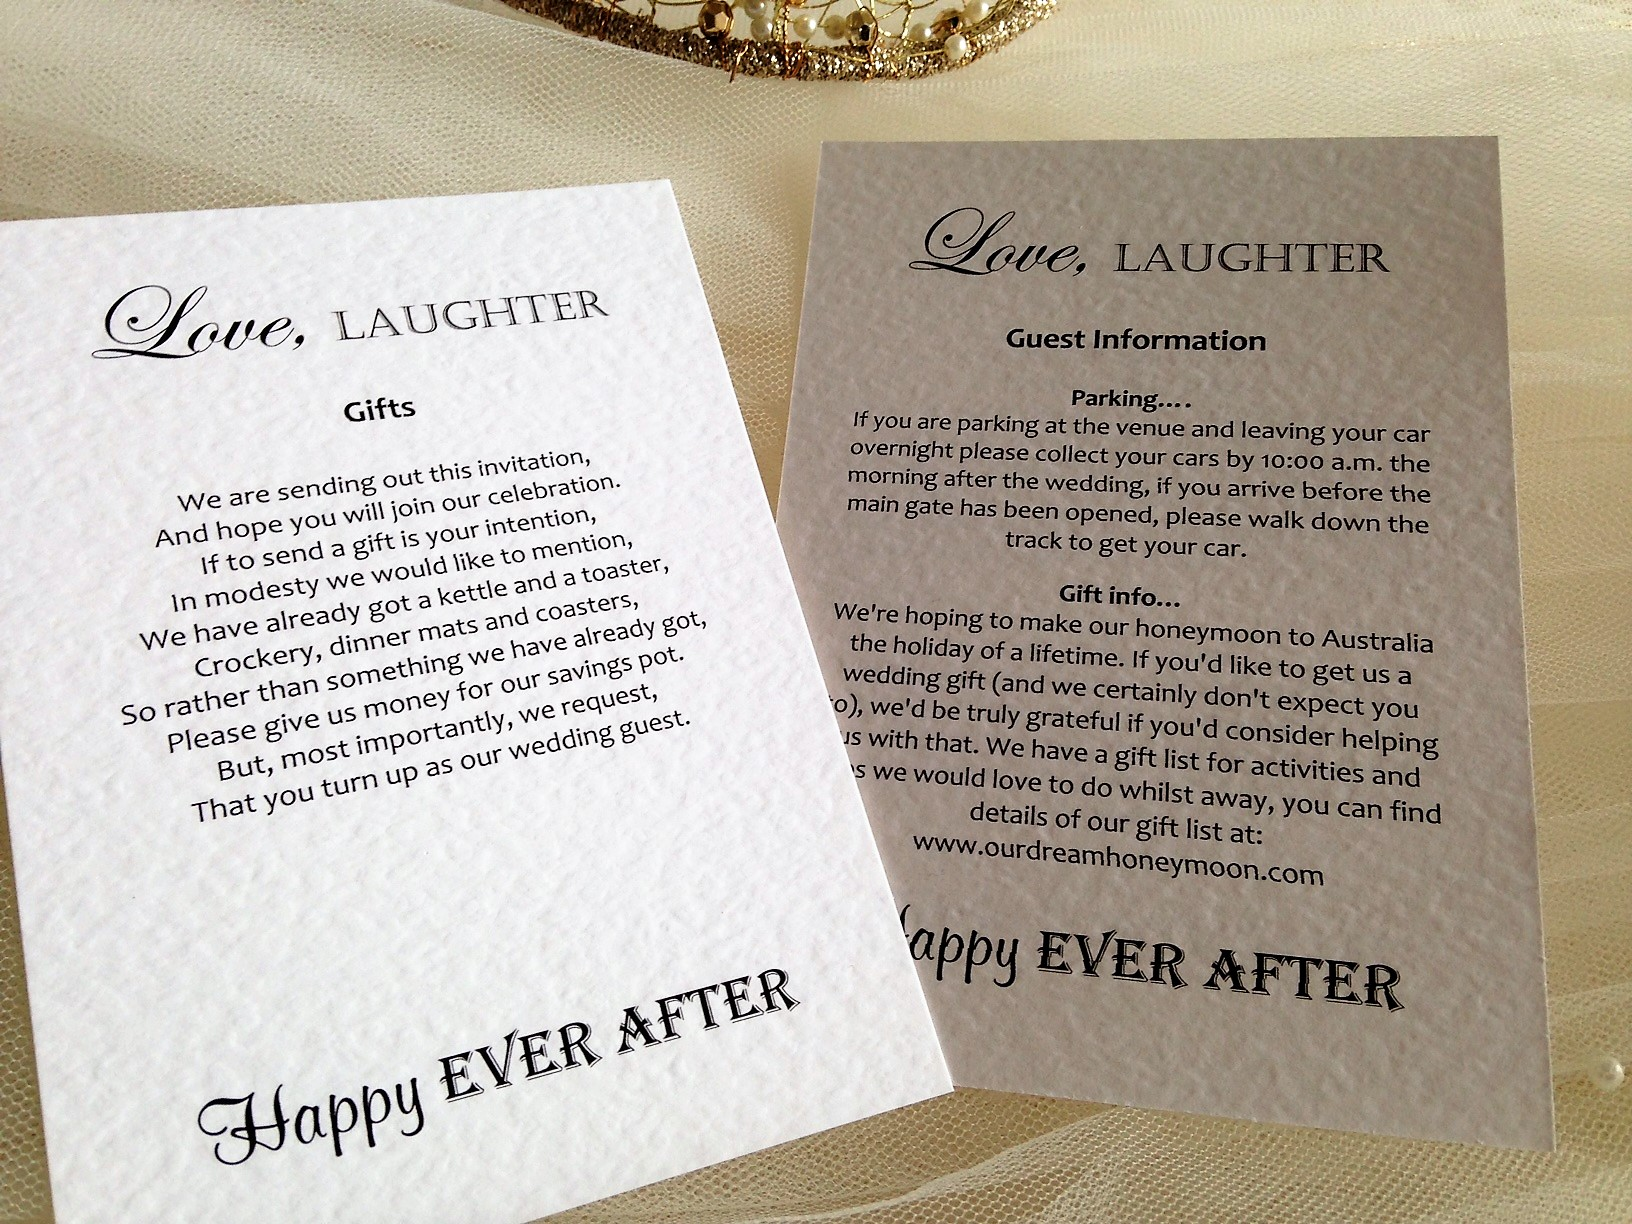 Love Laughter Additional Information Card 45p Each